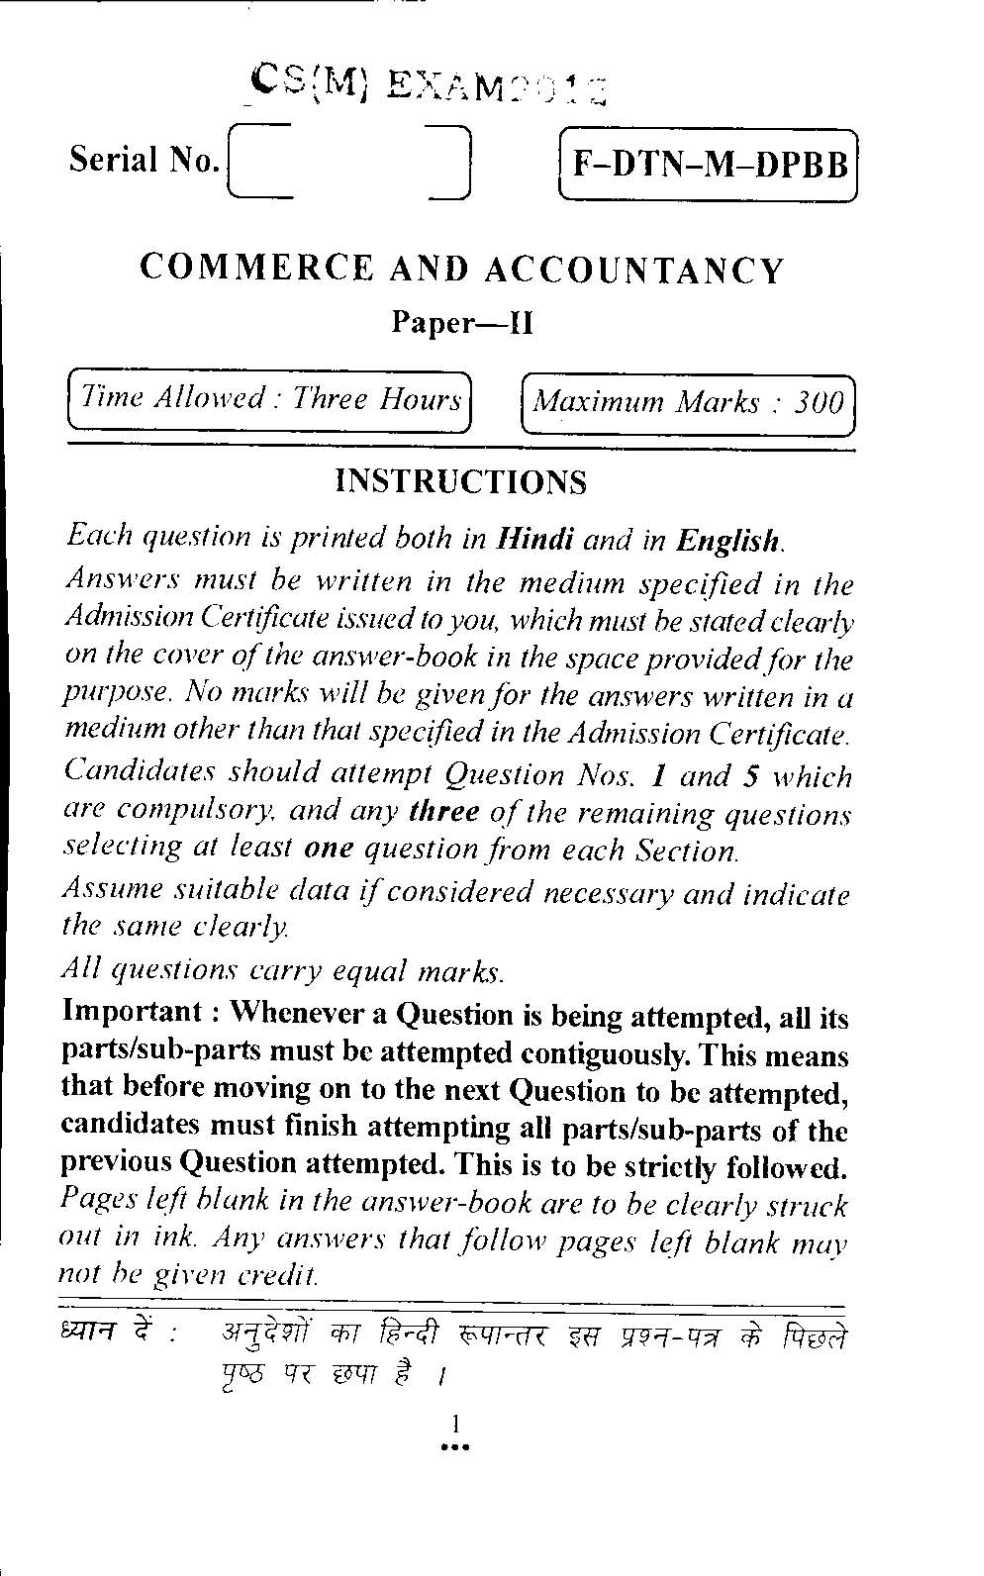 013 Essay Example Discrimination Civil Services Examination Commerce And Accountancy Paper Ii Previous Years Que Excellent Titles Age Topics Full